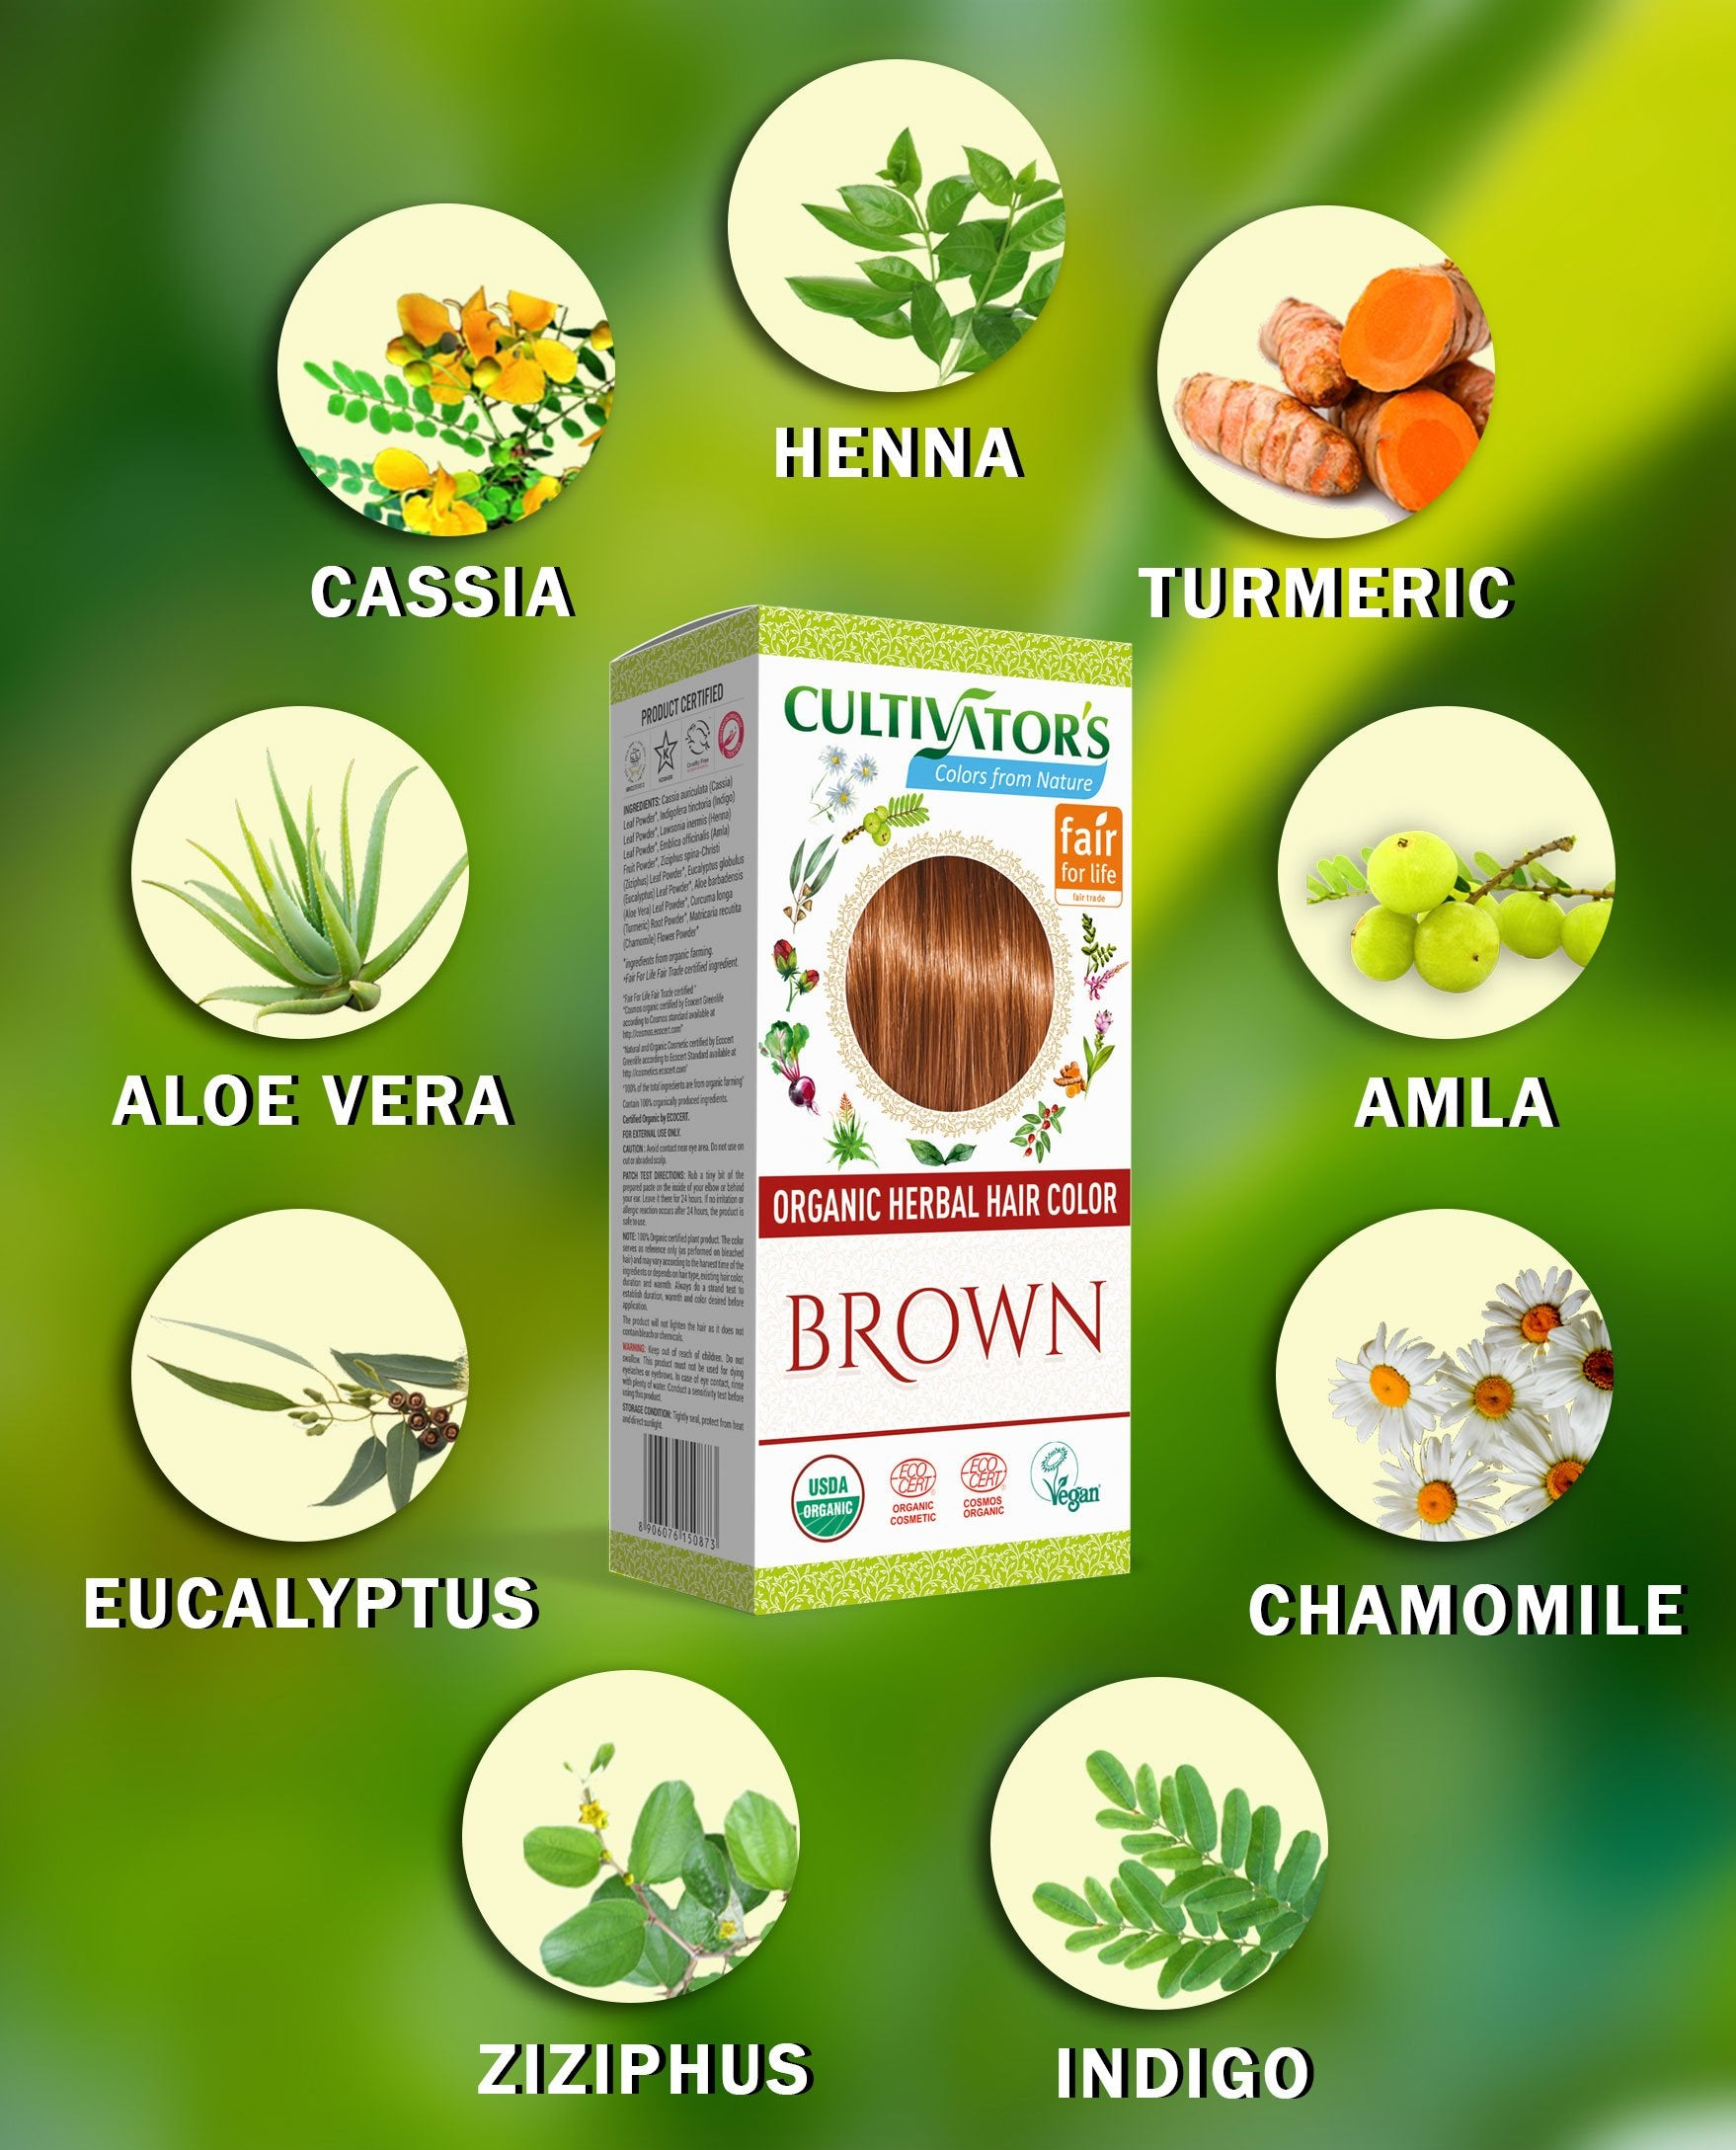 Get Certified Organic Herbal Hair Color Brown Online | Cultivators